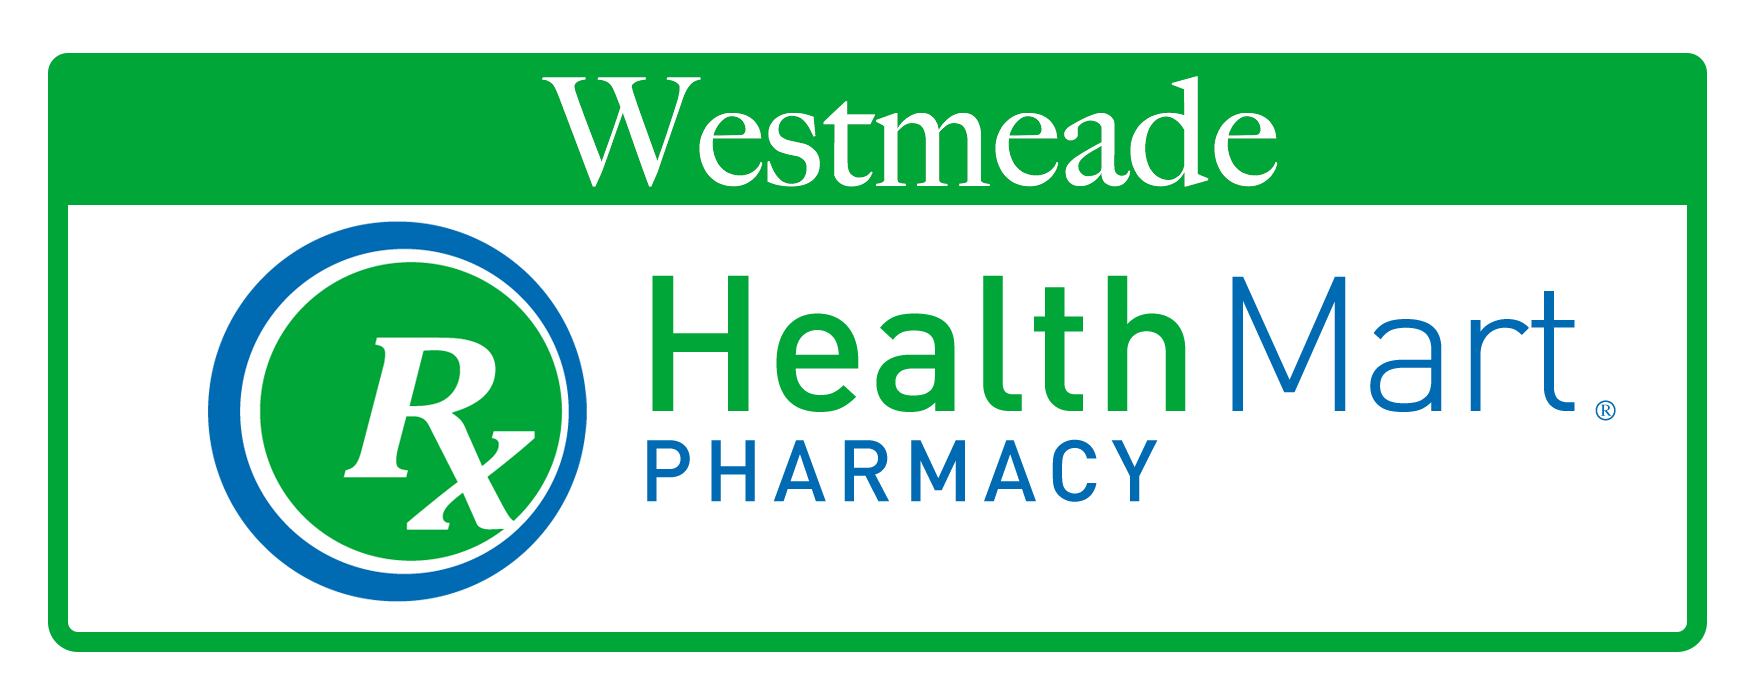 Westmeade Pharmacy